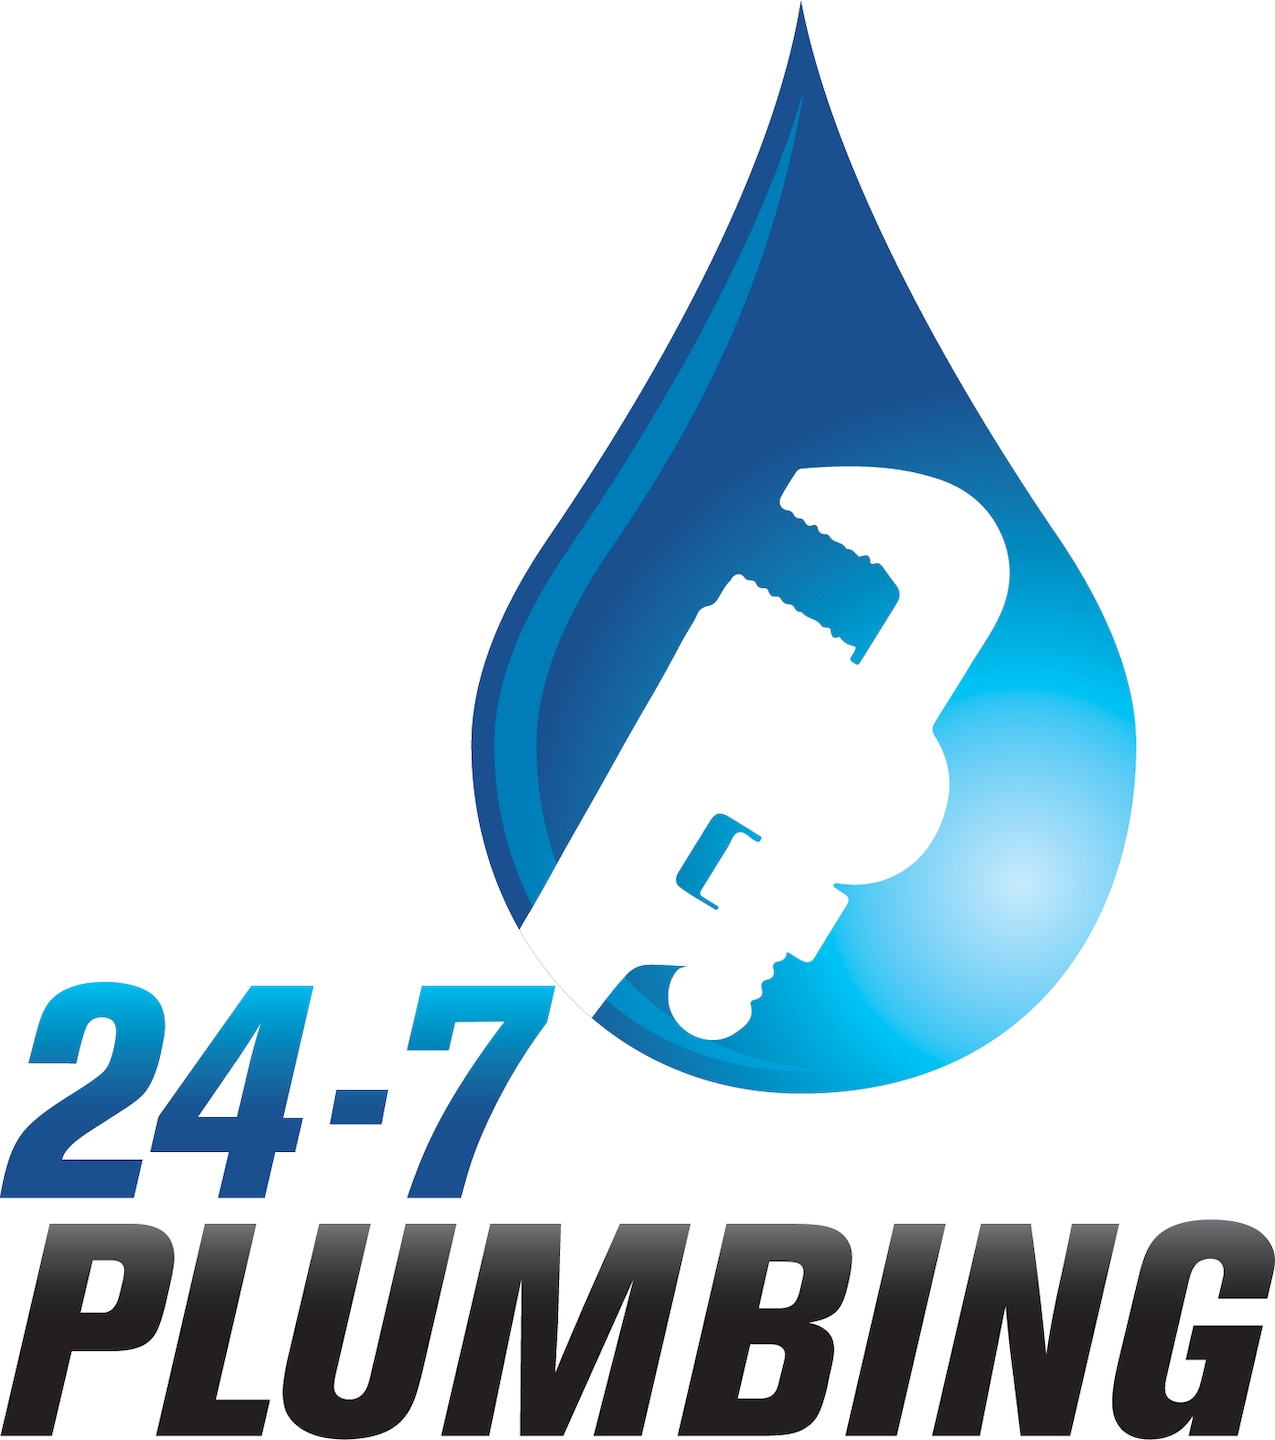 24-7 Plumbing Heating and Cooling